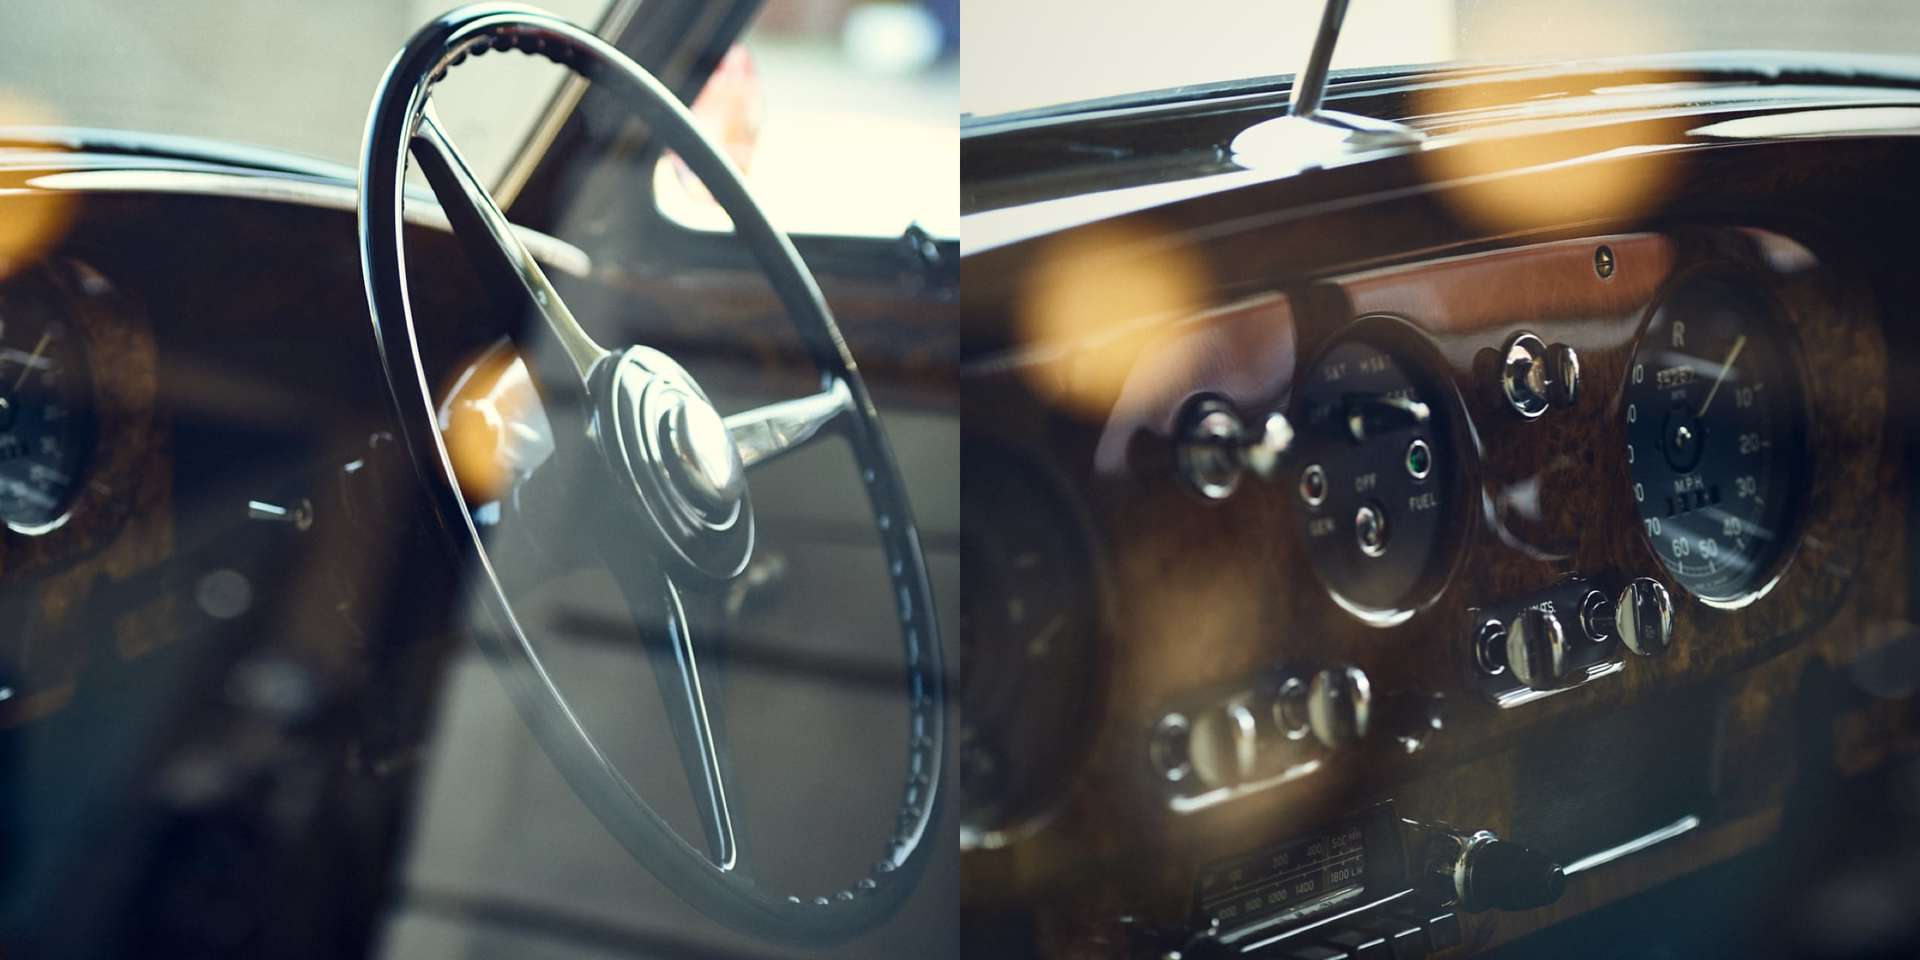 Close up of a steering wheel featured at the Rolls-Royce Goodwood Revival event